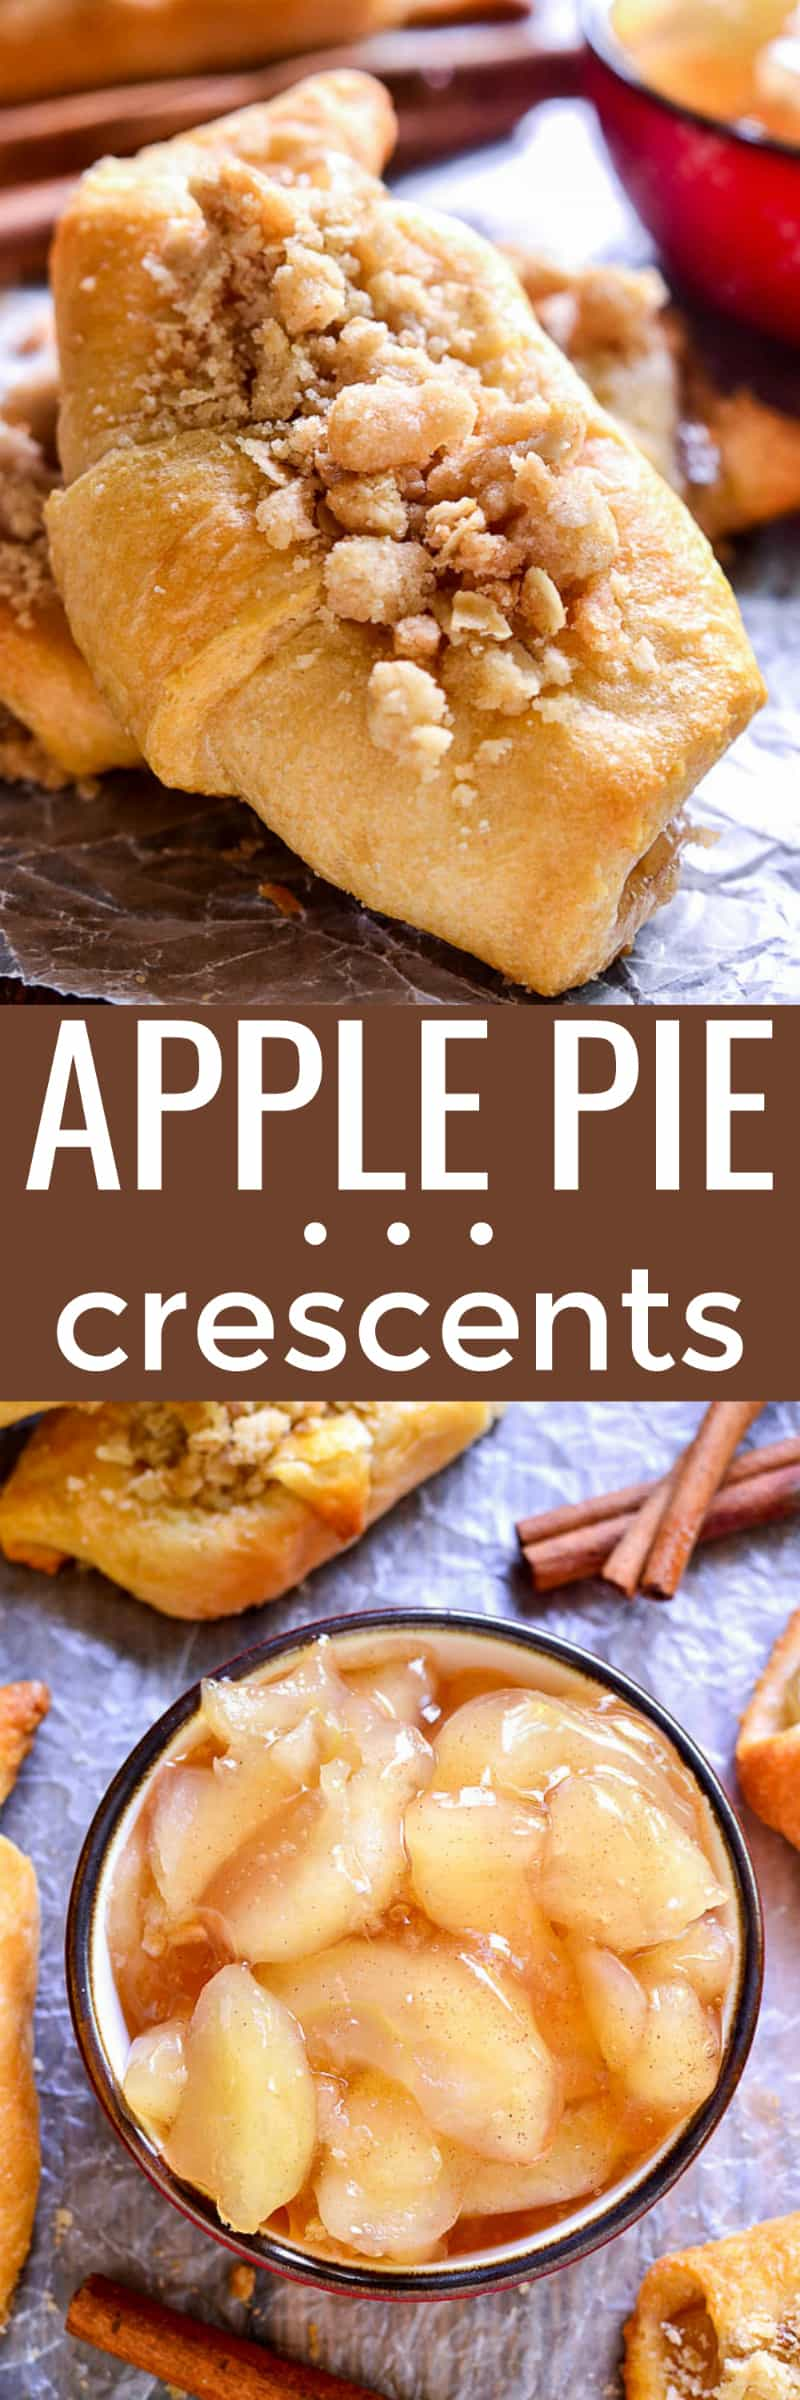 Collage image of Apple Pie Crescent Rolls